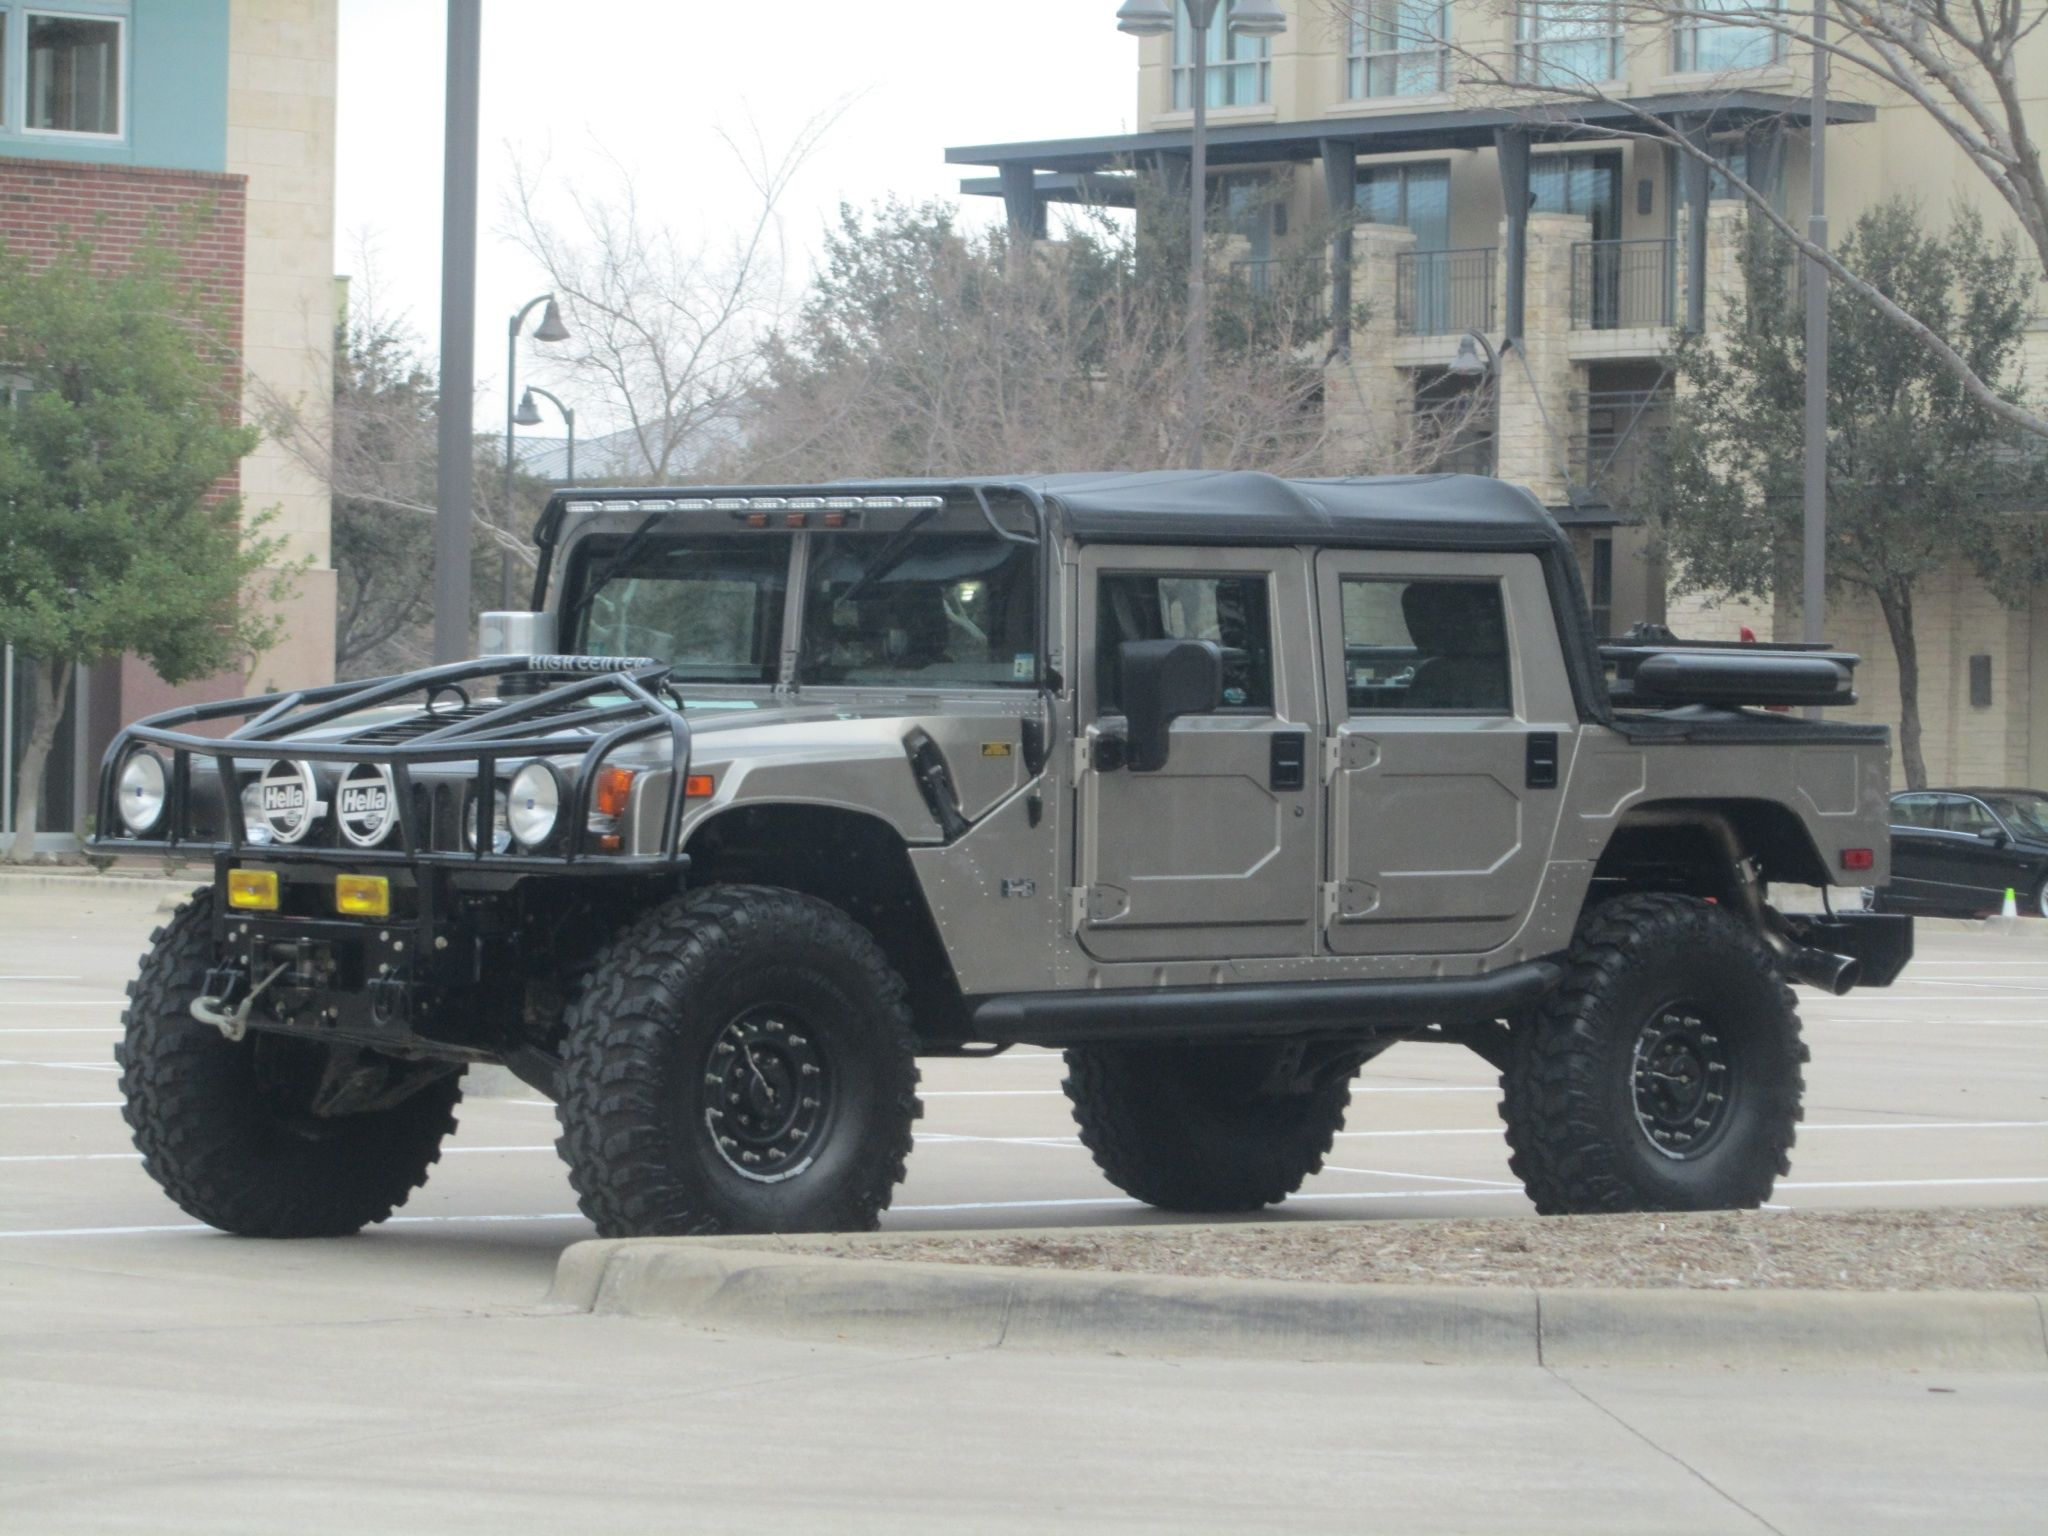 hummer h1 alpha cars motorcycles pinterest hummer h1 alpha hummer h1 and cars. Black Bedroom Furniture Sets. Home Design Ideas